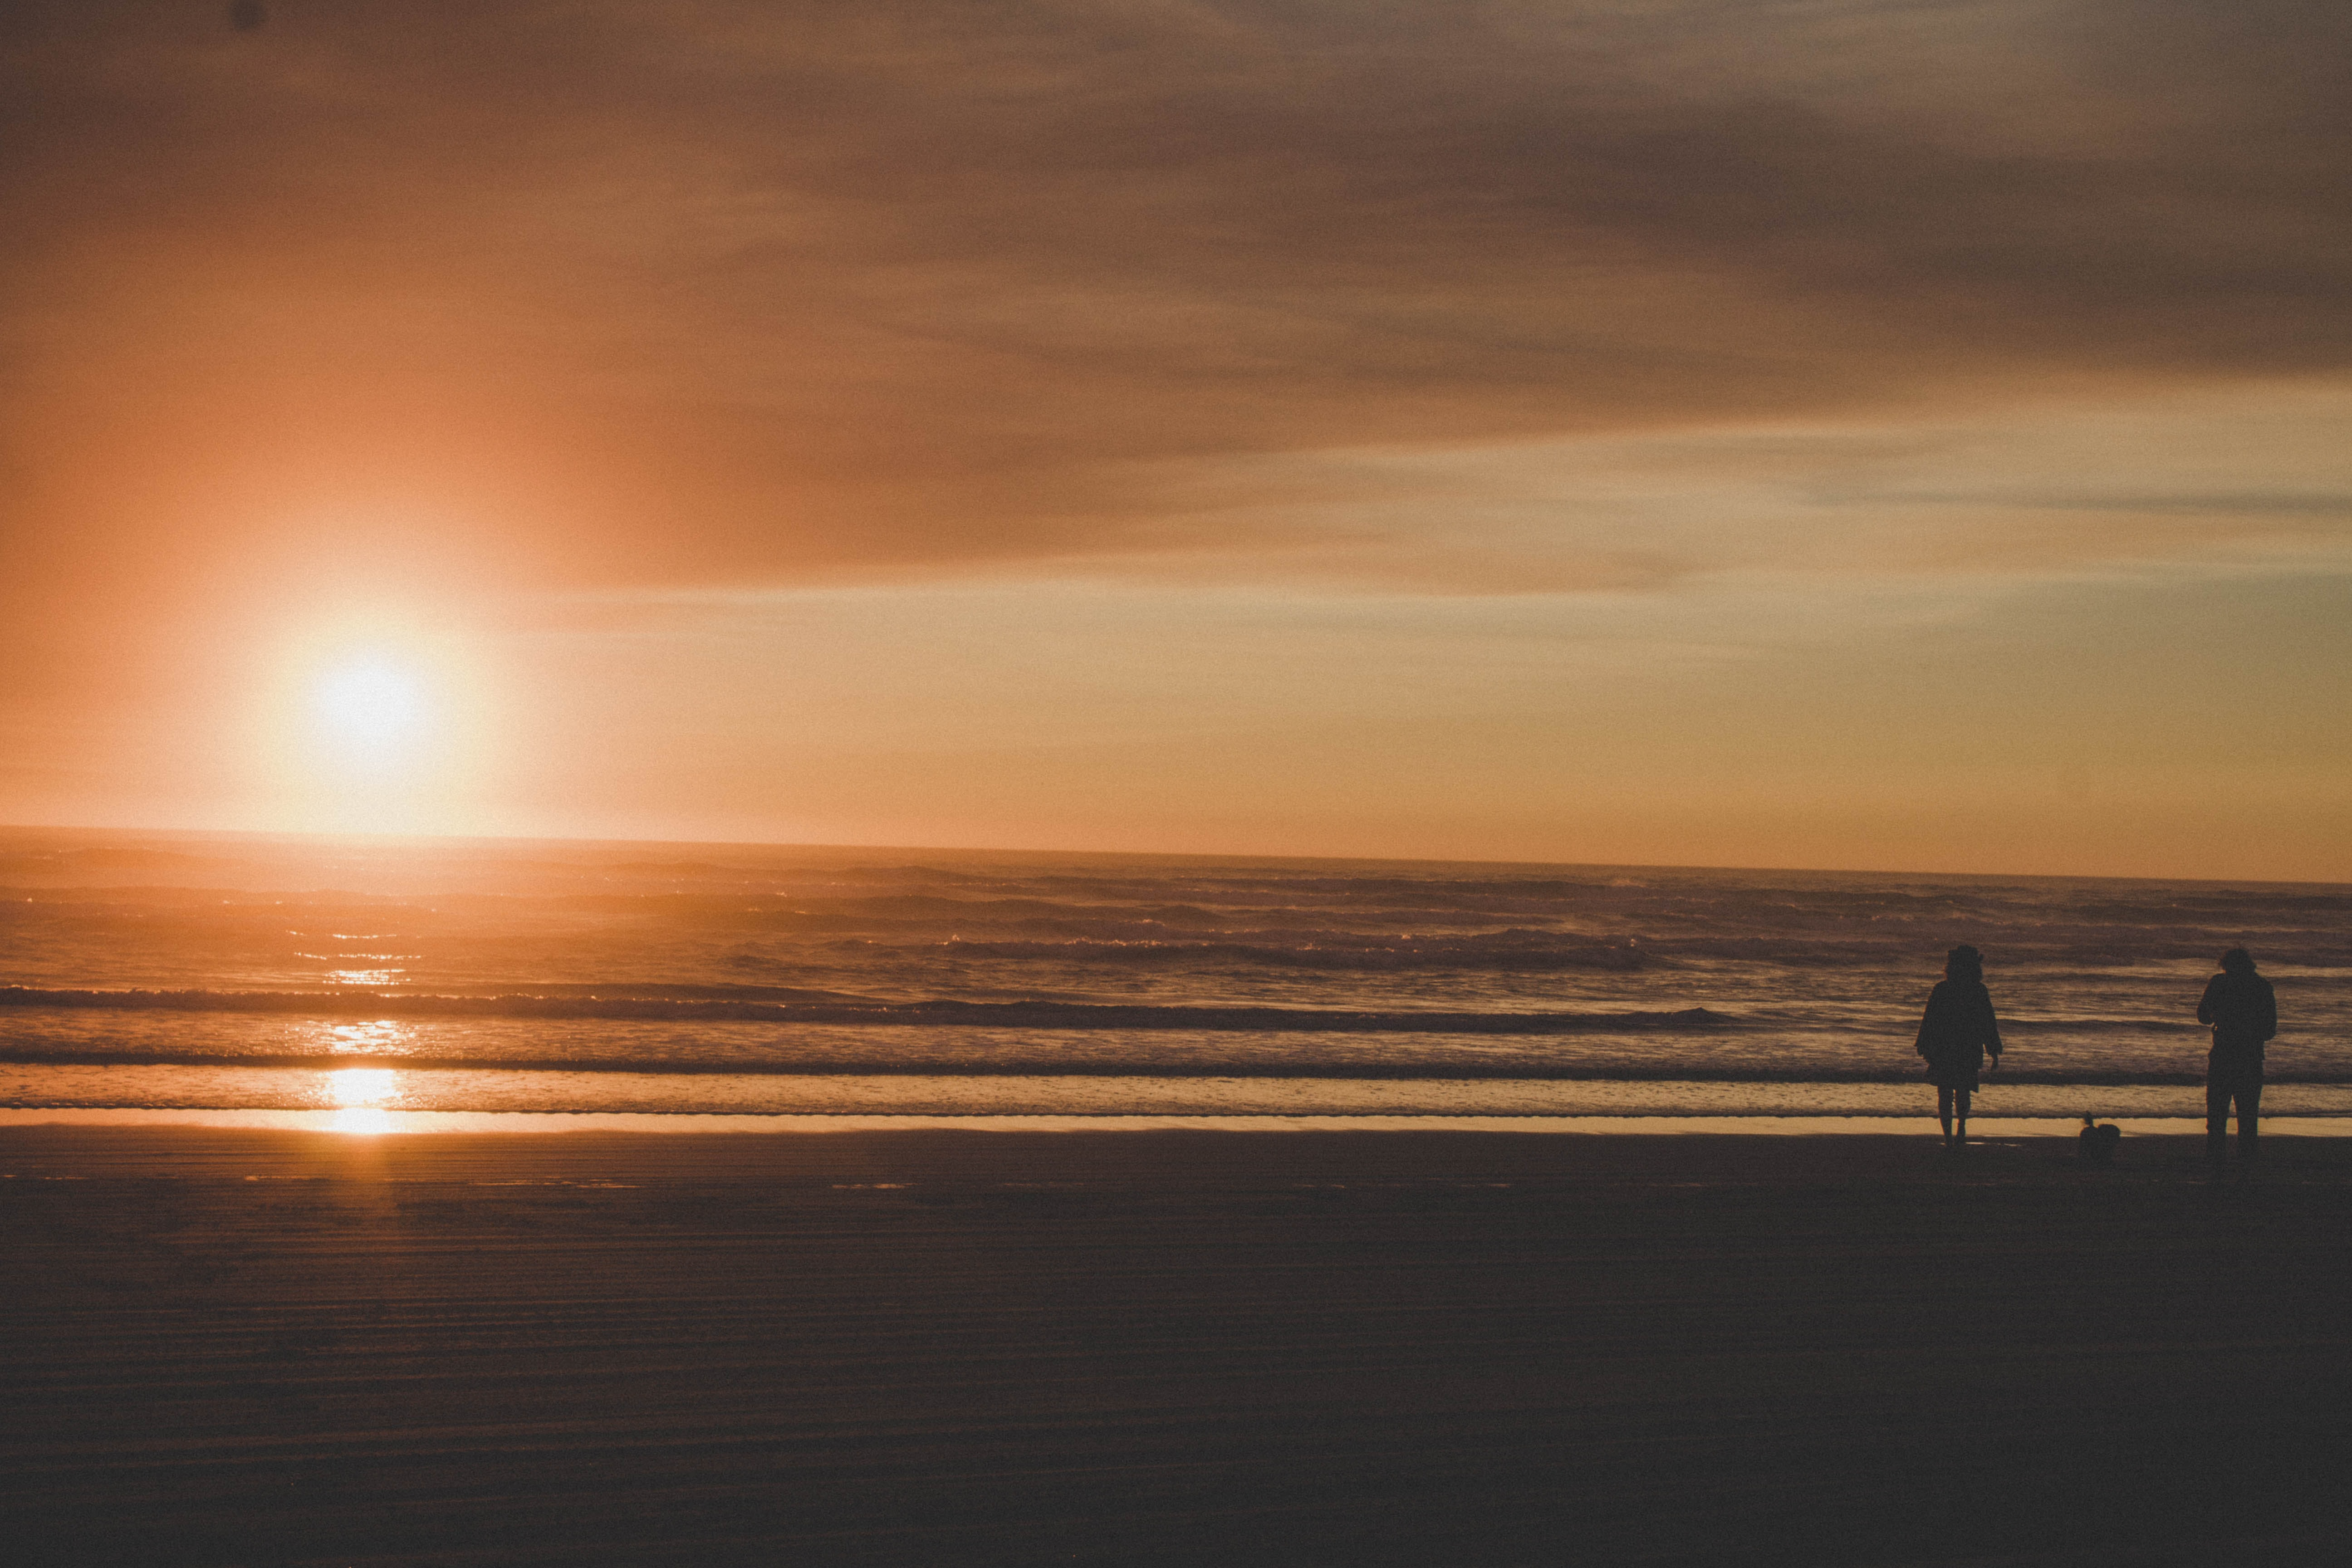 silhouette photography of person standing while facing body of water during sunset